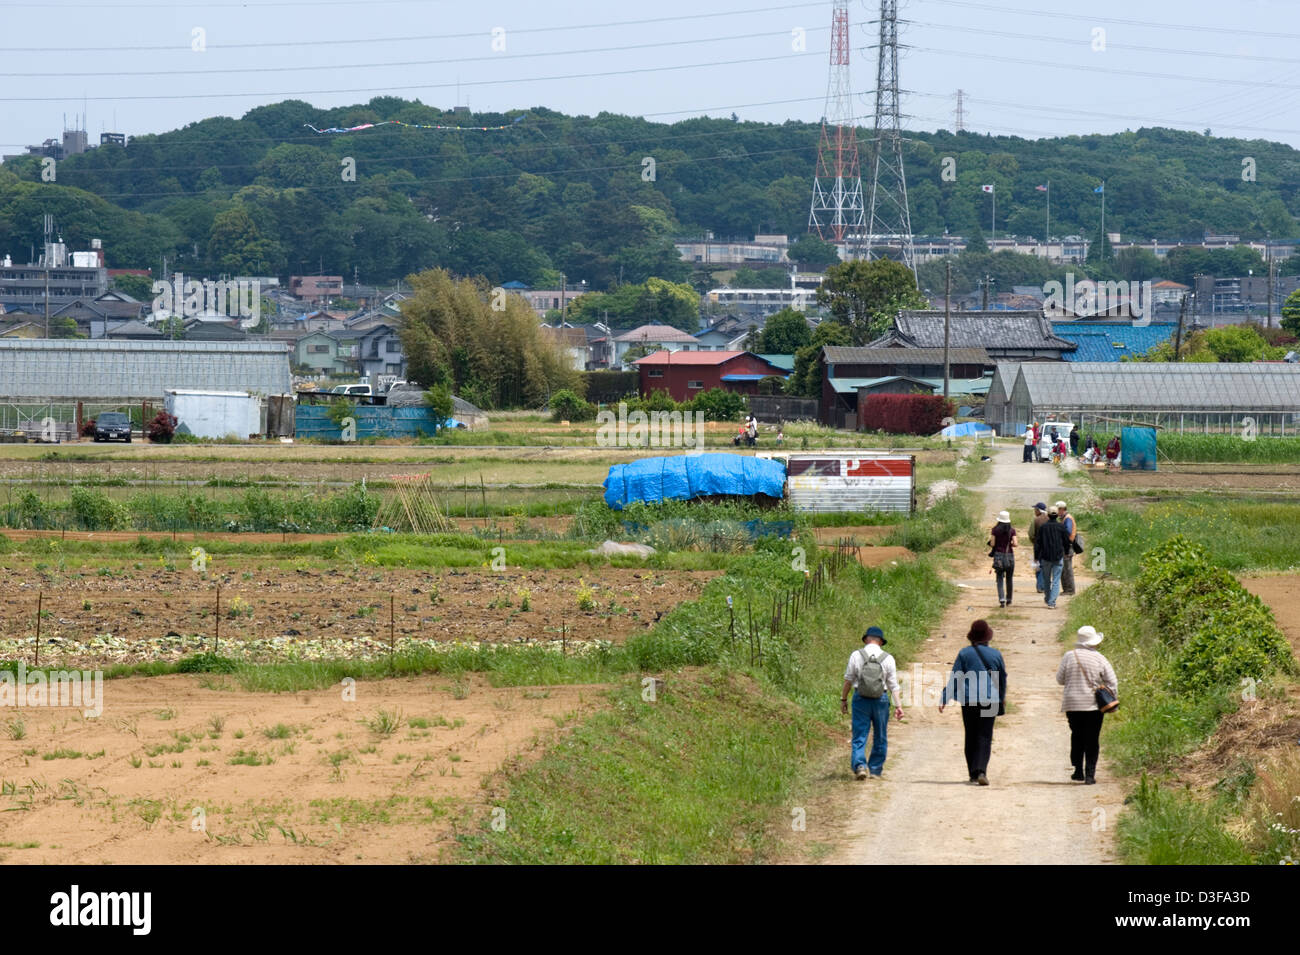 High tension power lines run across the countryside farm fields and neighborhoods of rural Kanagawa Prefecture. - Stock Image